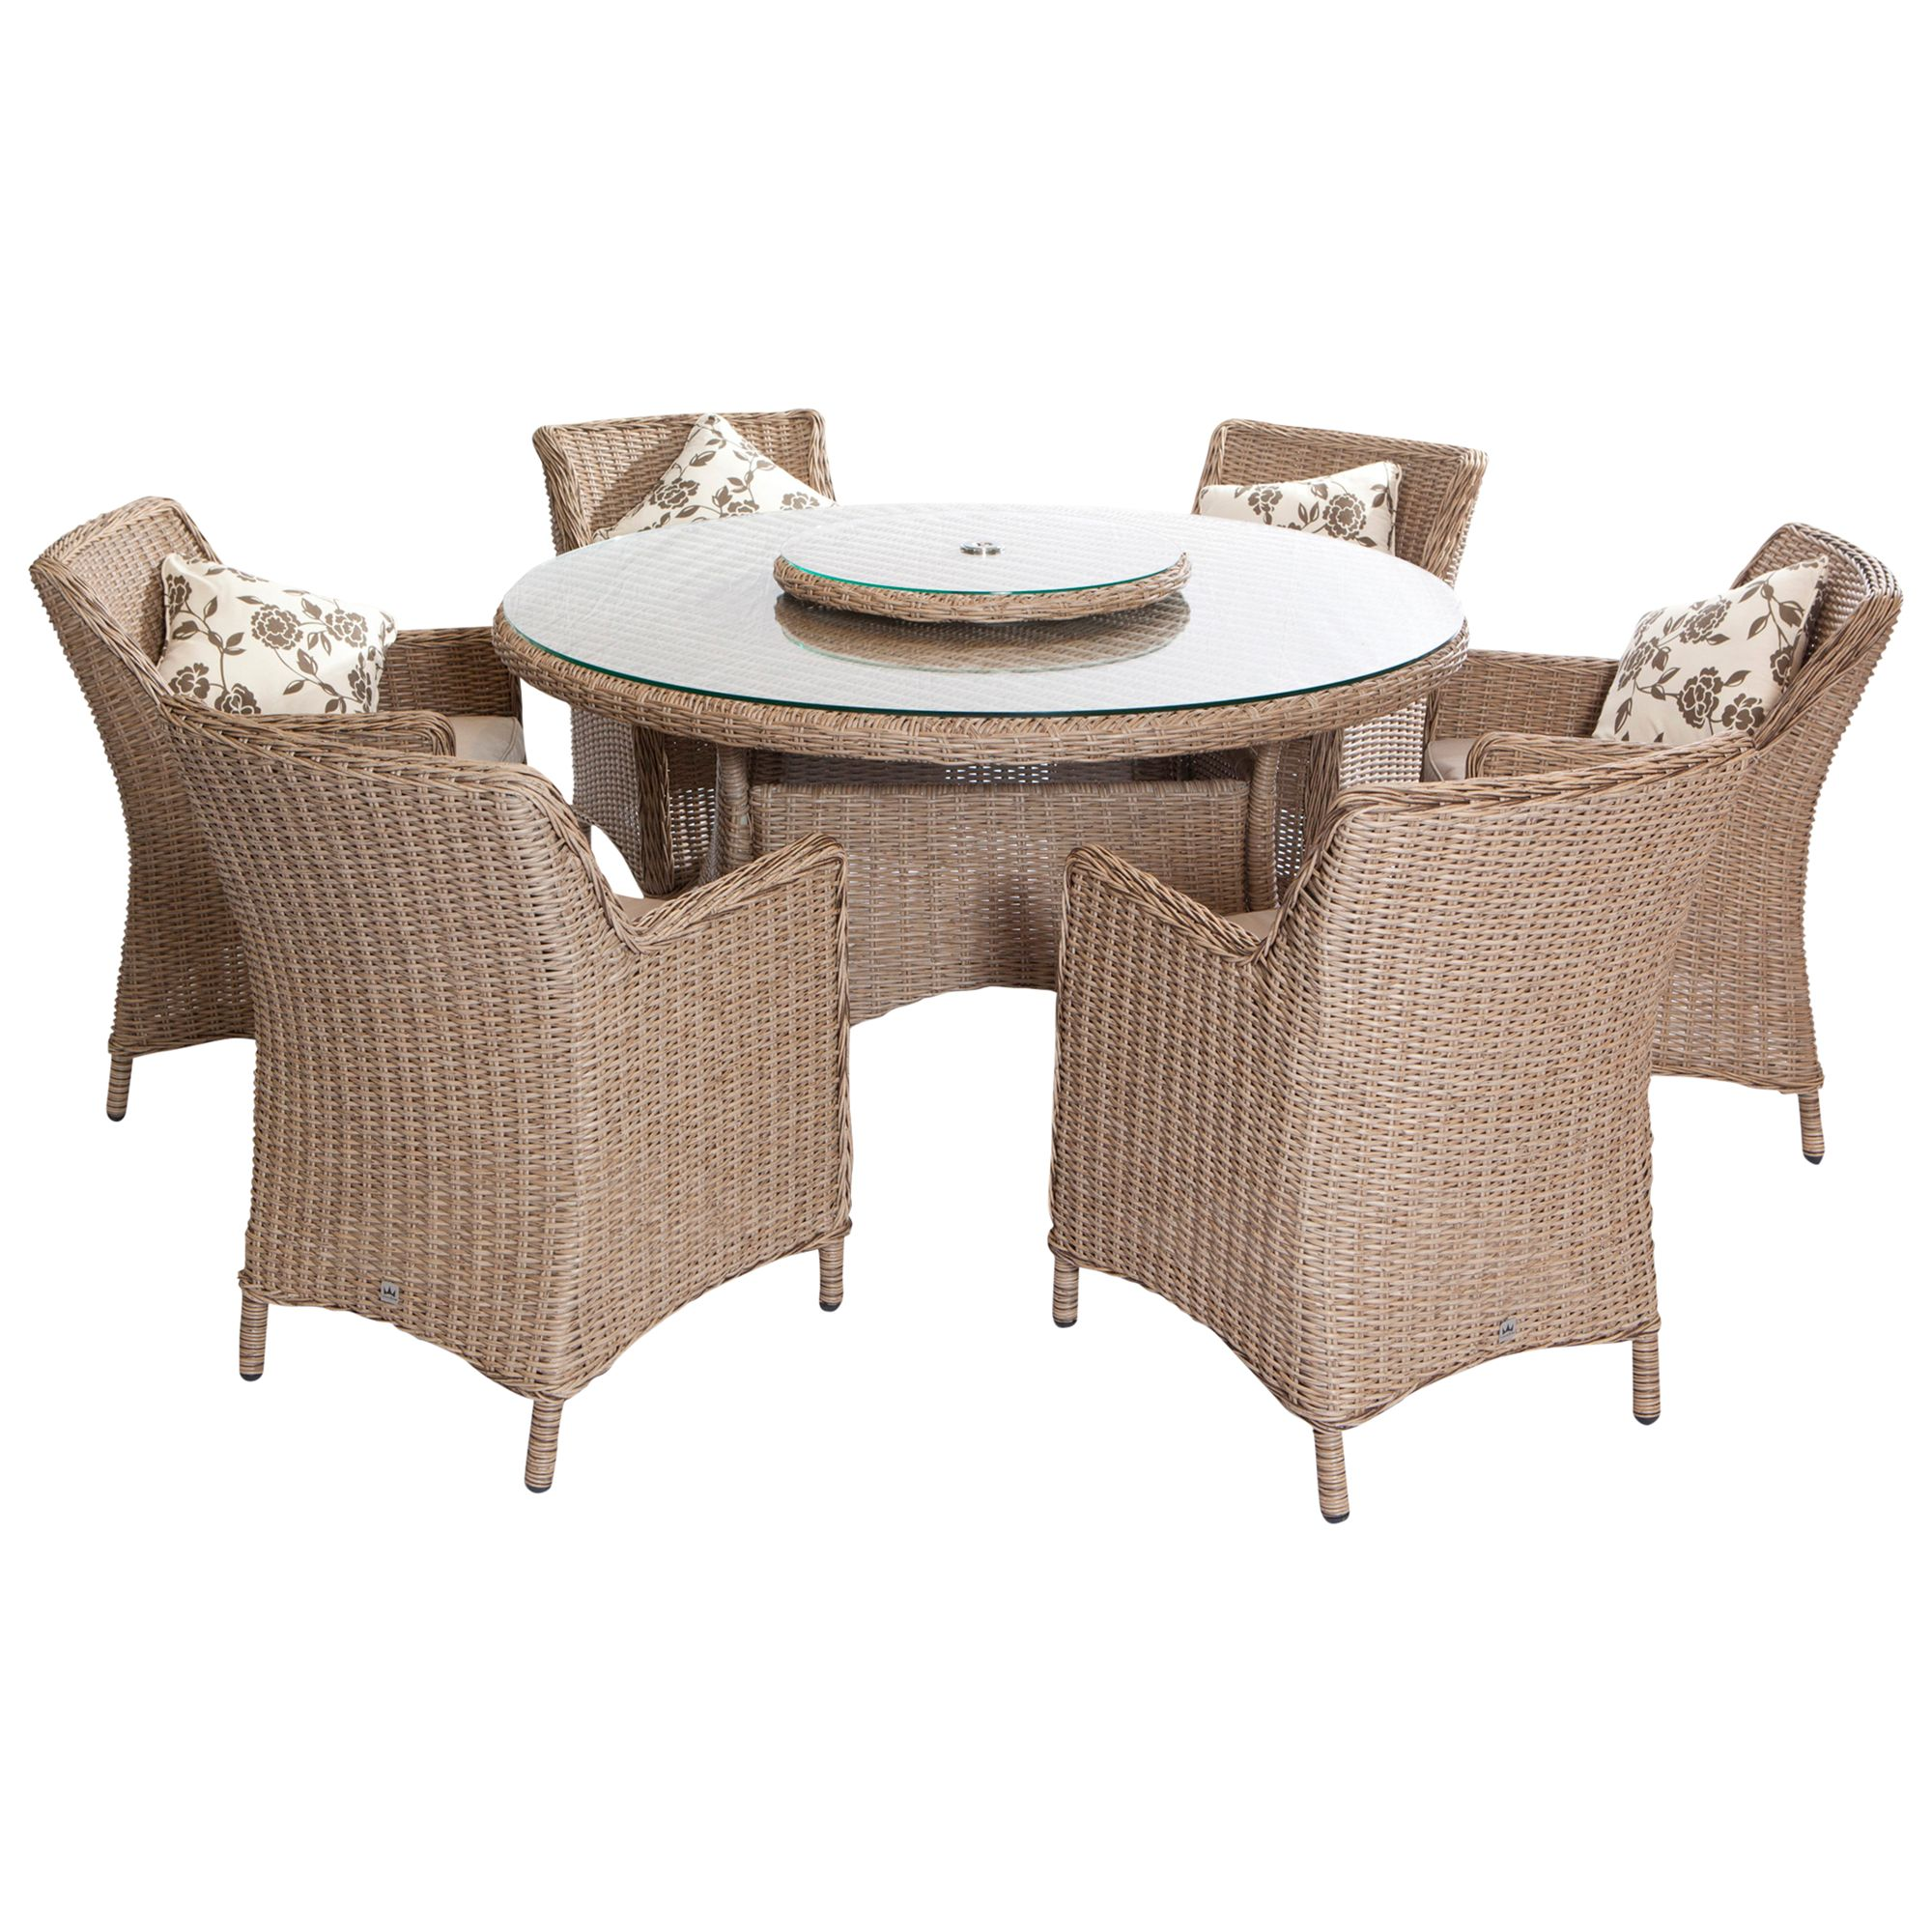 Leisuregrow Saigon 6-Seater Dining Set